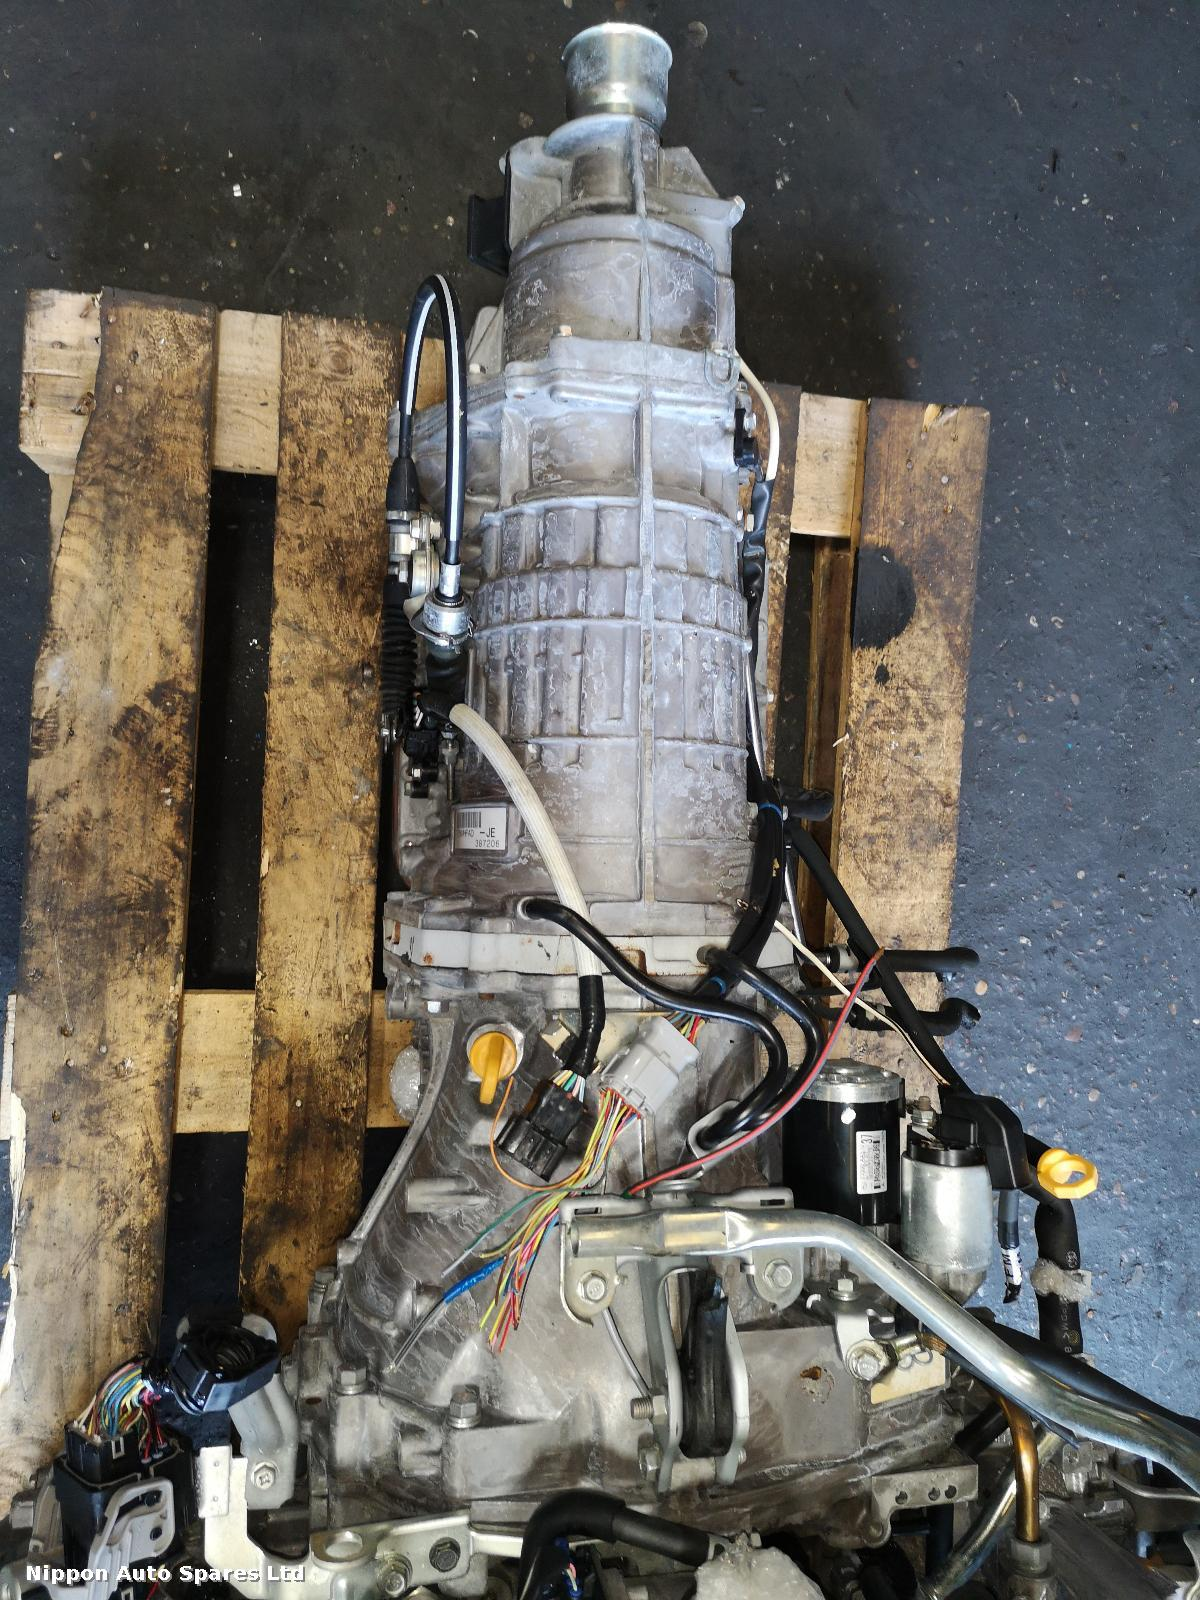 Subaru OUTBACK Gearbox TV1B8MHFAD 2.5 AUTO 4EAT : 54930